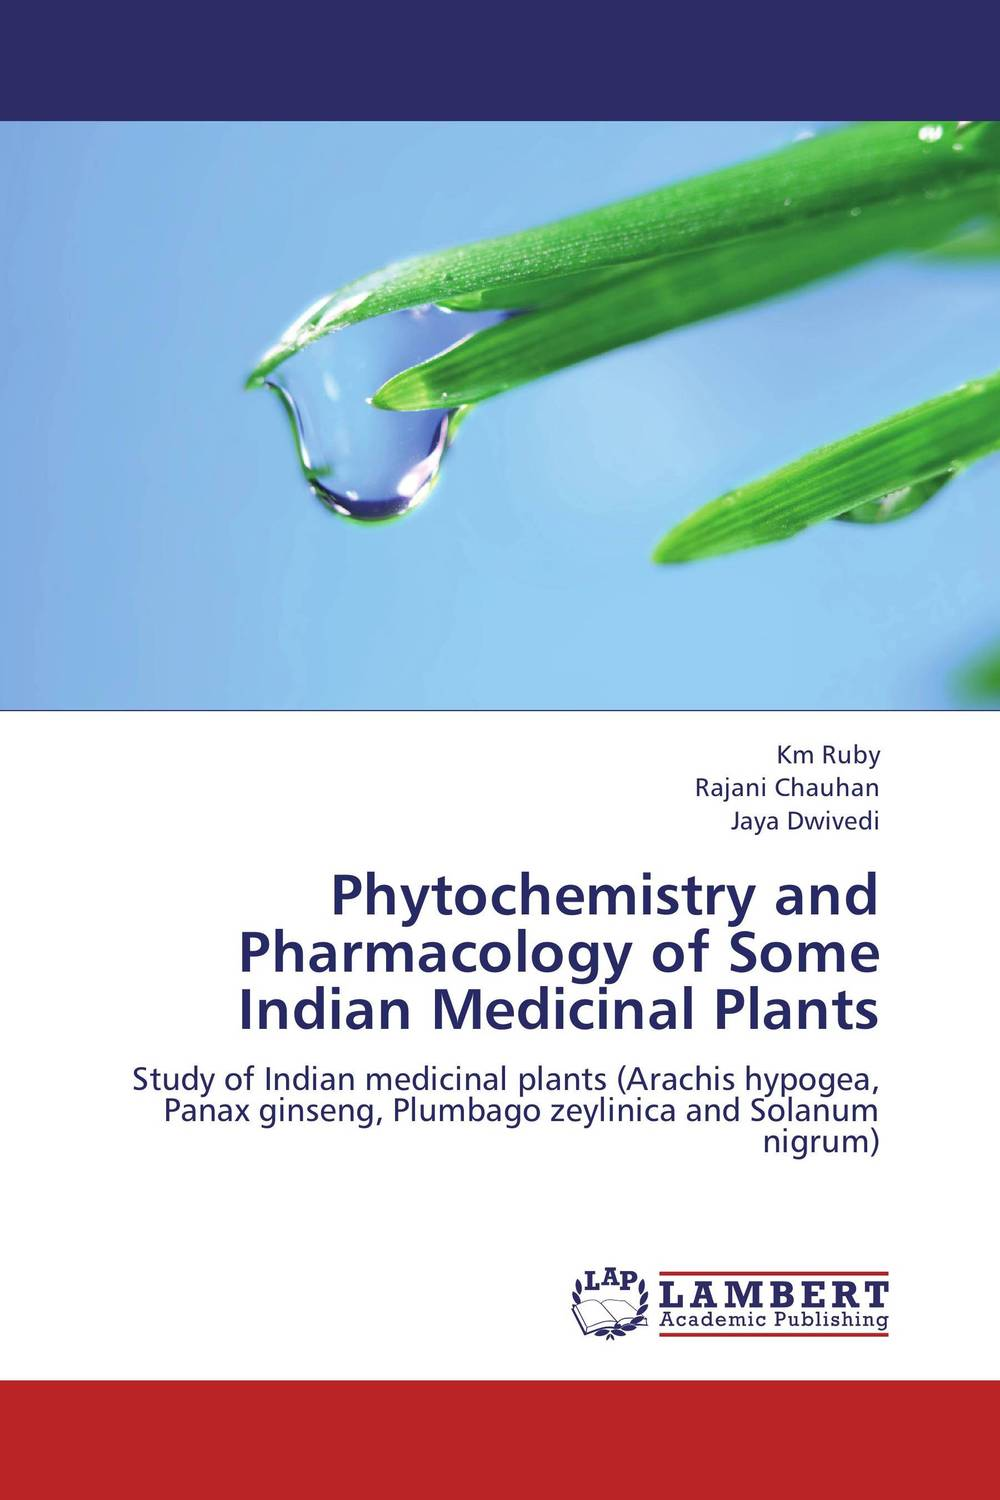 Phytochemistry and Pharmacology of Some Indian Medicinal Plants laxman sawant bala prabhakar and nancy pandita phytochemistry and bioactivity of enicostemma littorale